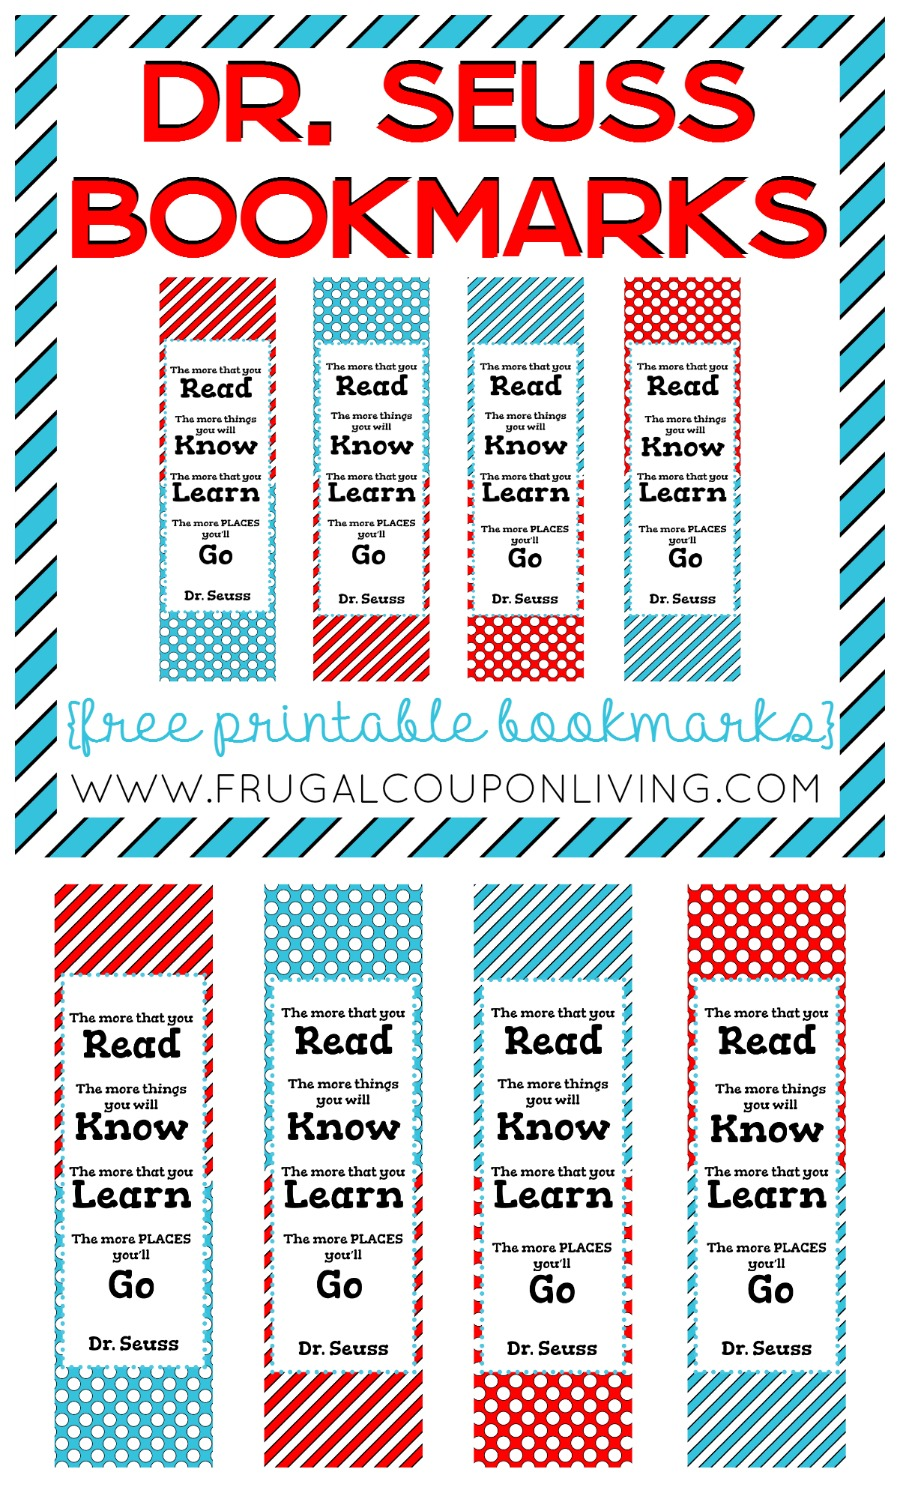 Free-dr-seuss-printable-bookmarks-frugal-coupon-living